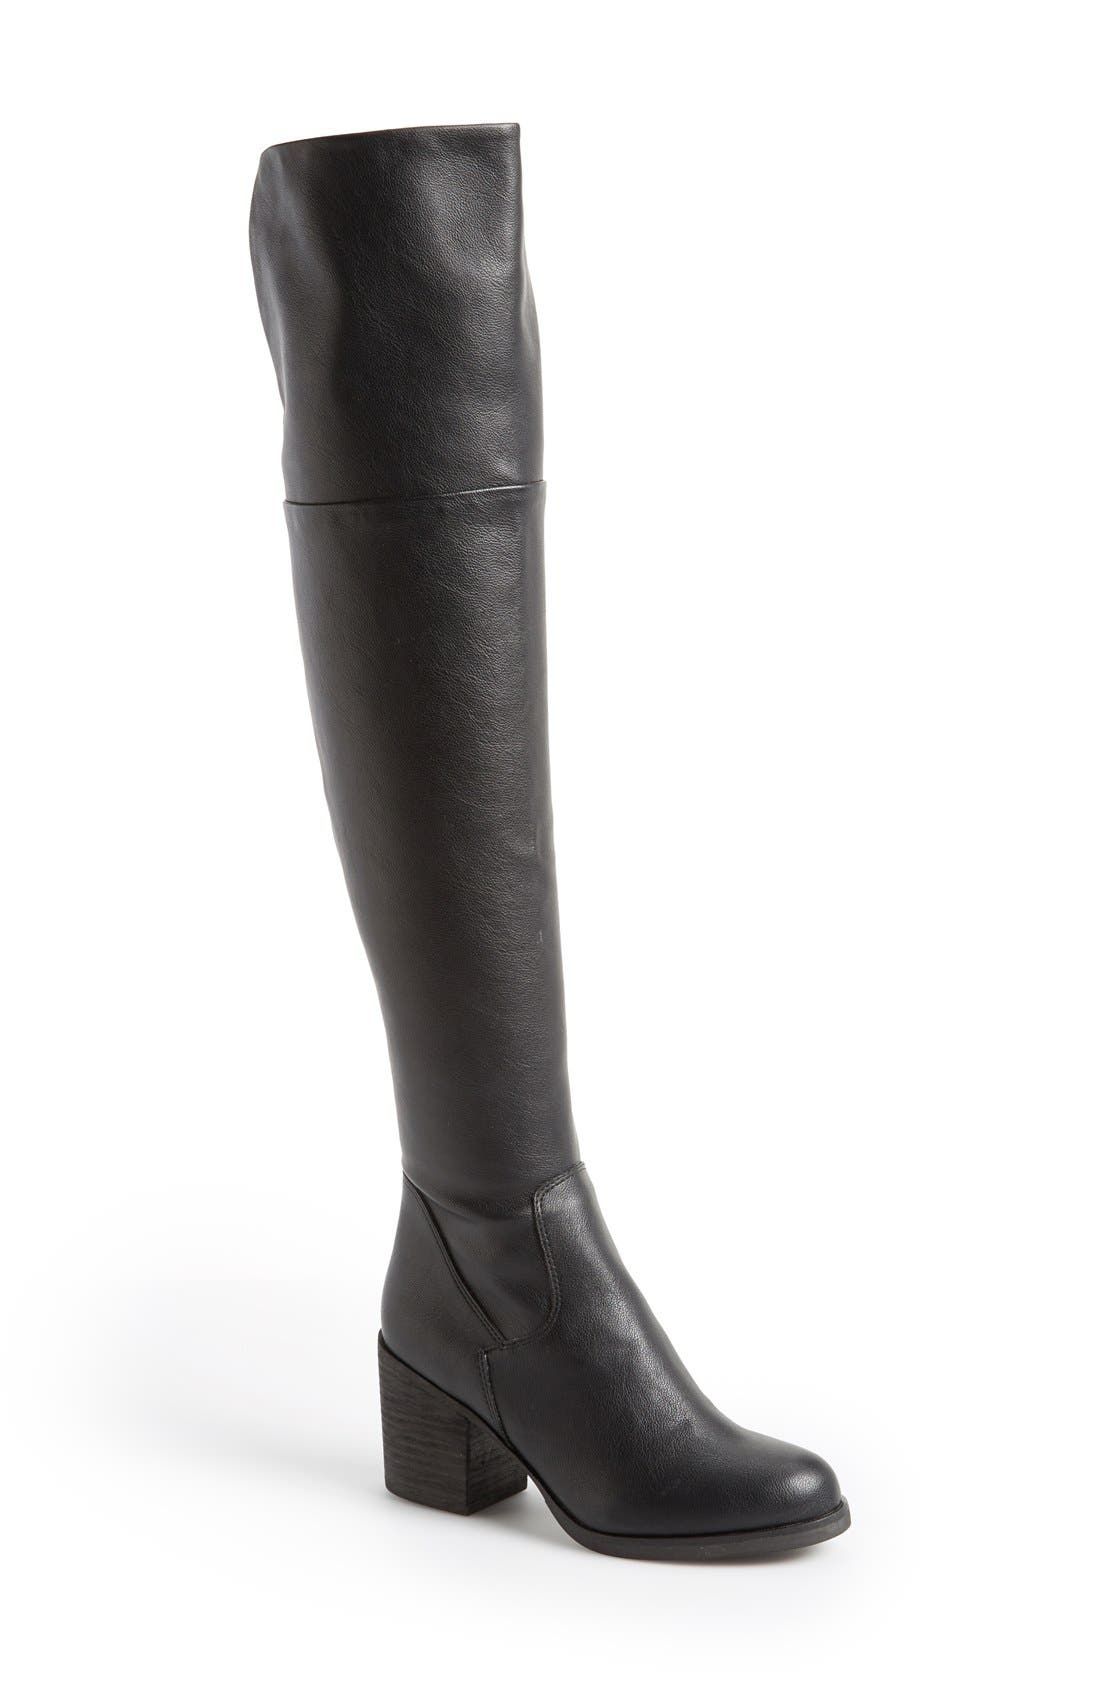 STEVE MADDEN 'Odyssey' Over the Knee Boot, Main, color, 005